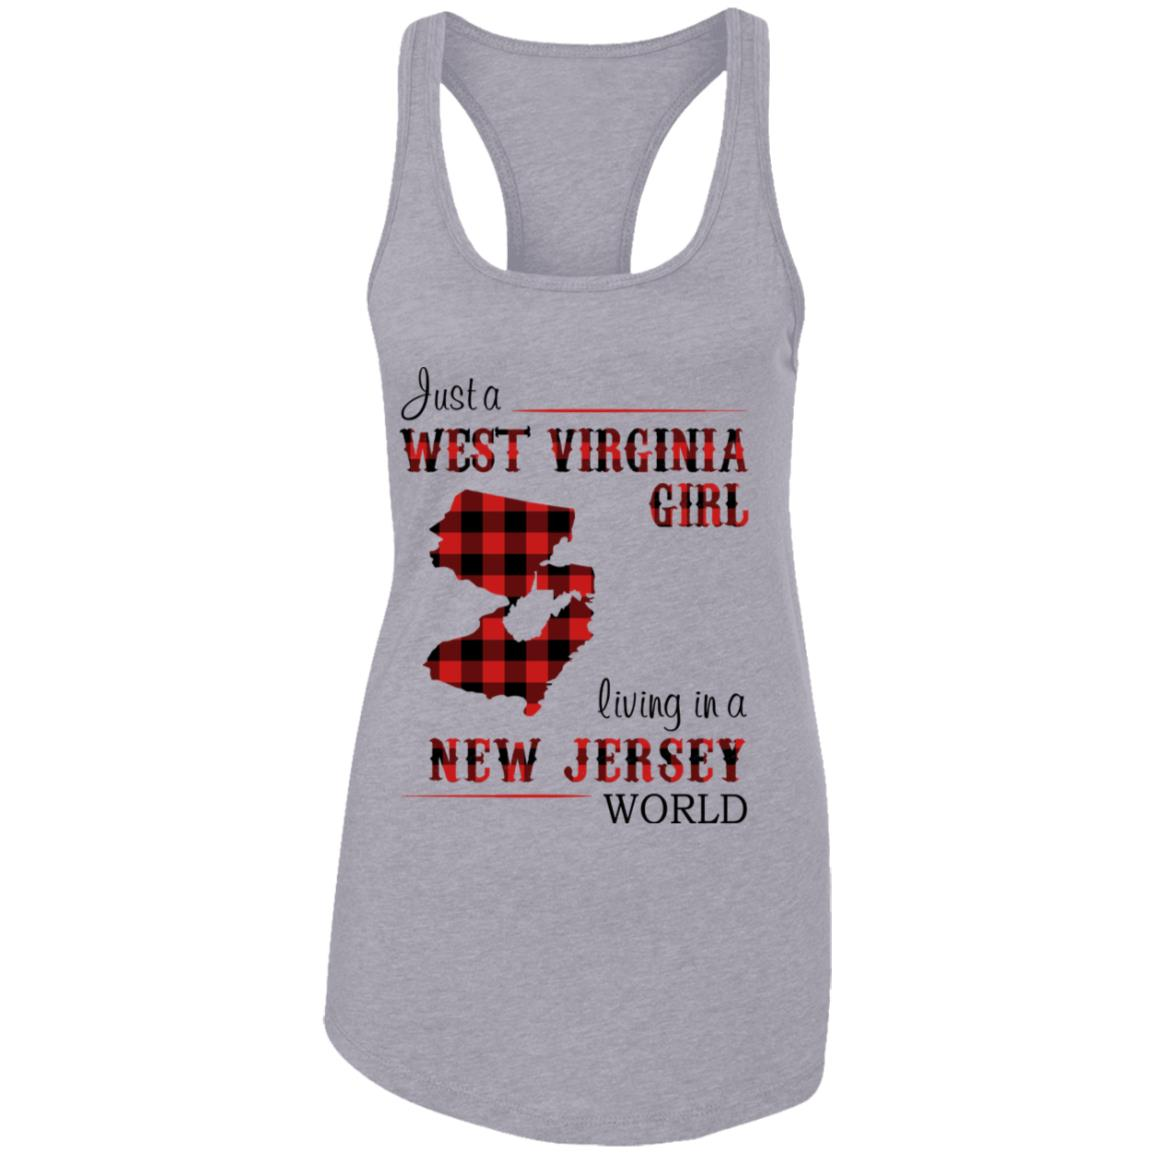 JUST A WEST VIRGINIA GIRL LIVING IN A NEW JERSEY WORLD